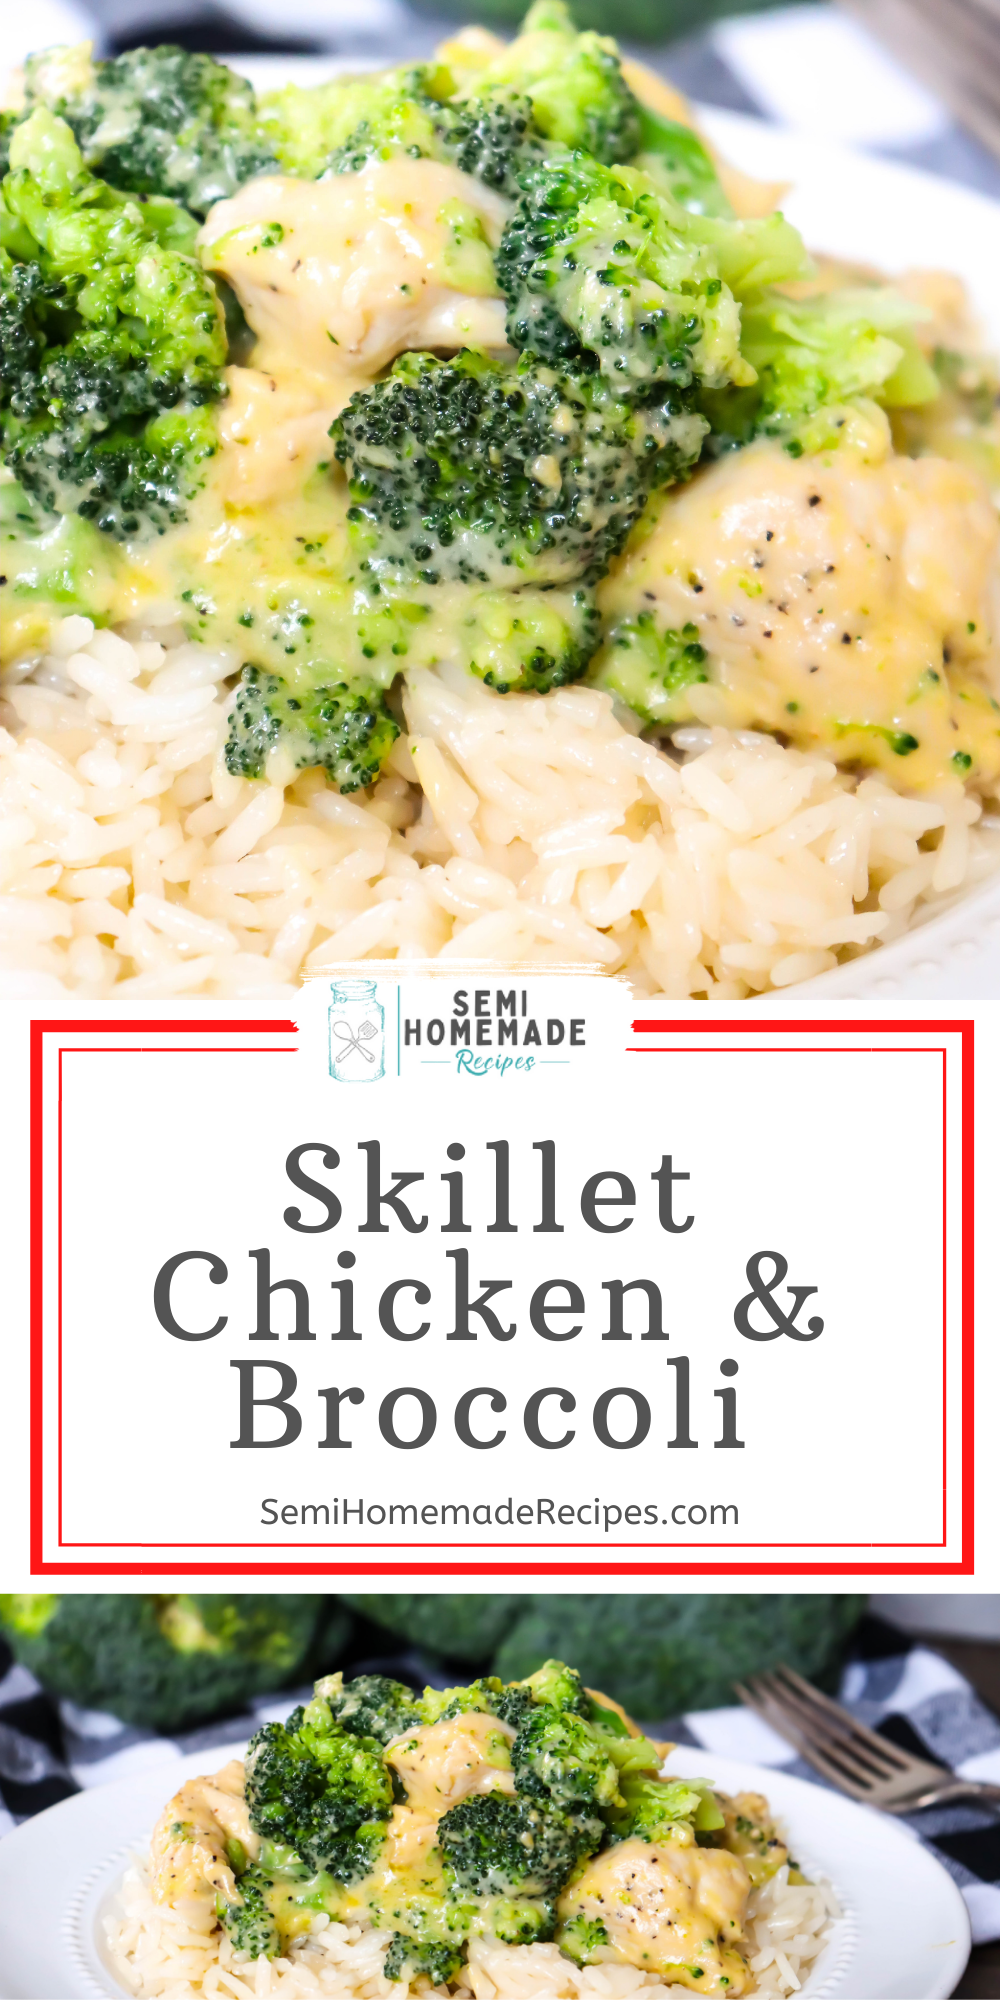 Chicken, Cheese, broccoli and about 30 minutes make up this vintage skillet recipes that's great for an easy and quick dinner. This skillet meal can be served over rice or pasta or with a side dish for a complete meal!